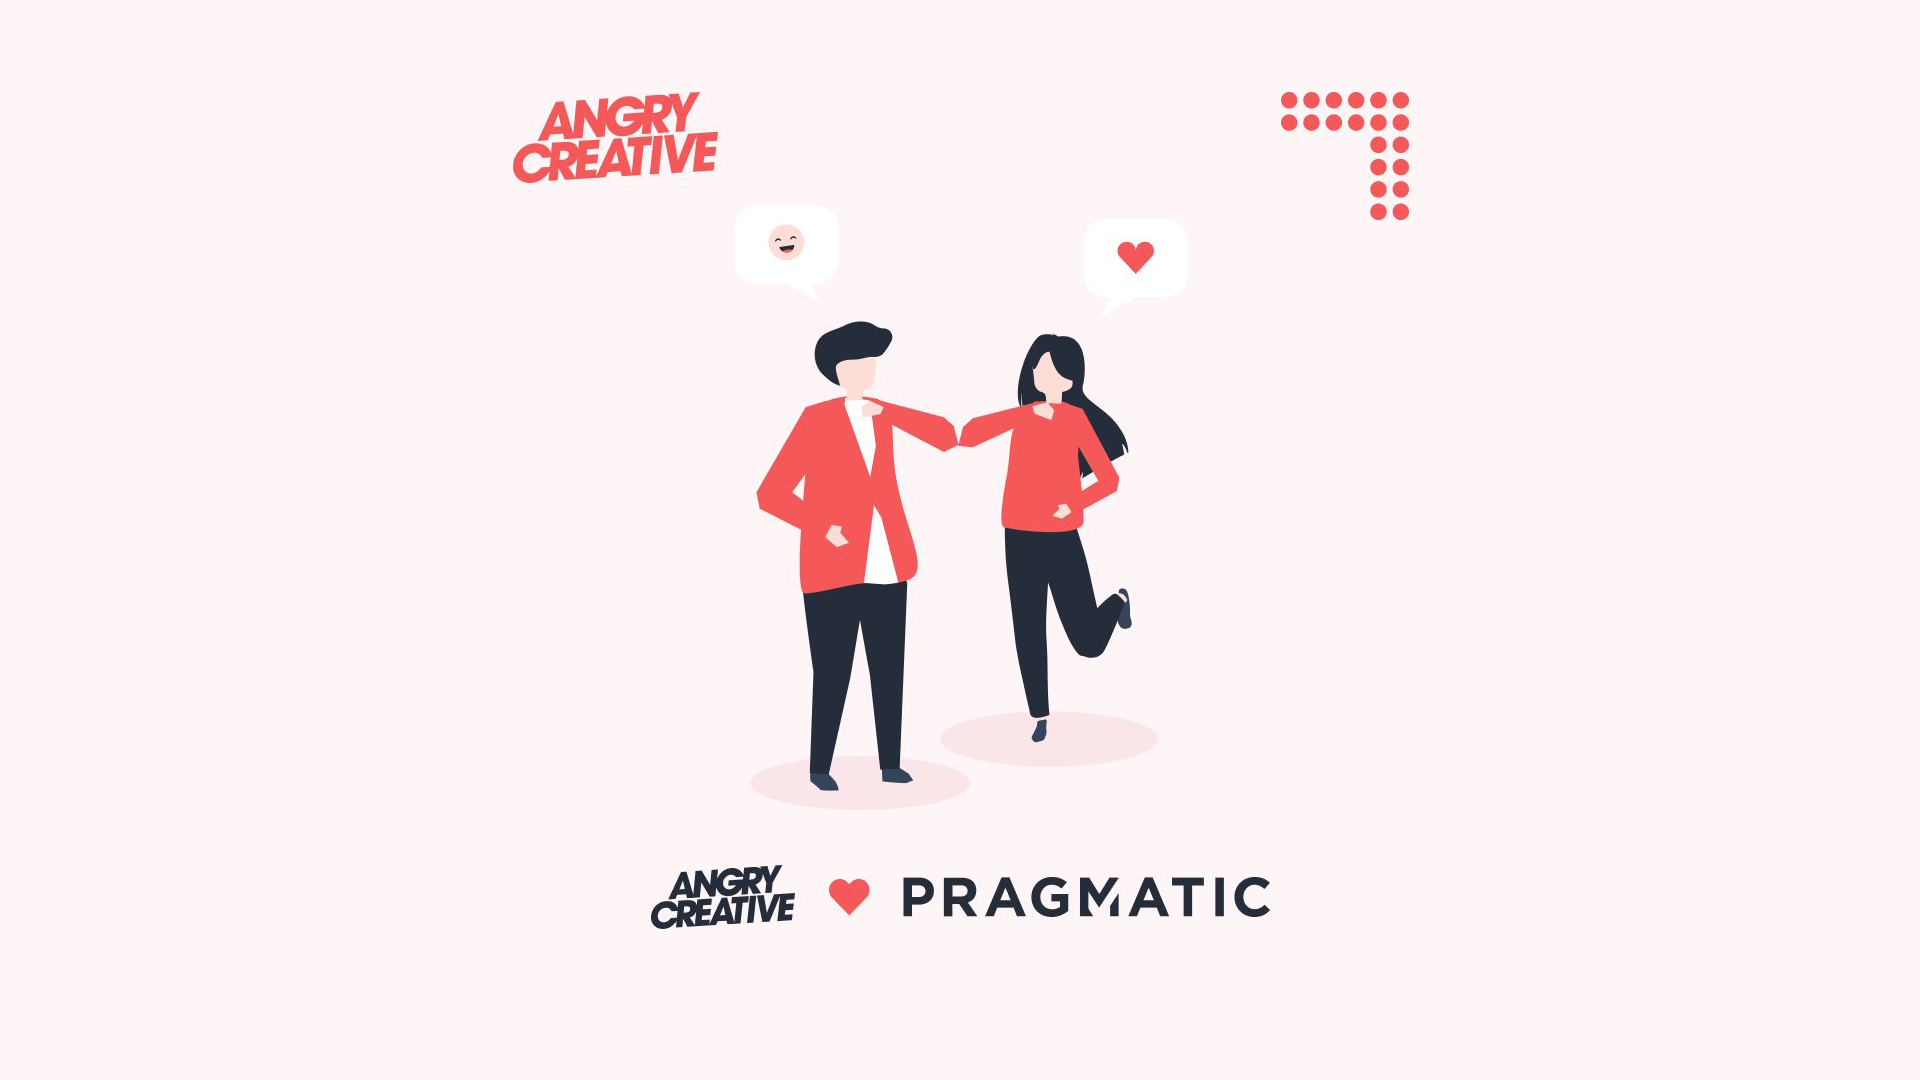 angrycreative-pragmatic